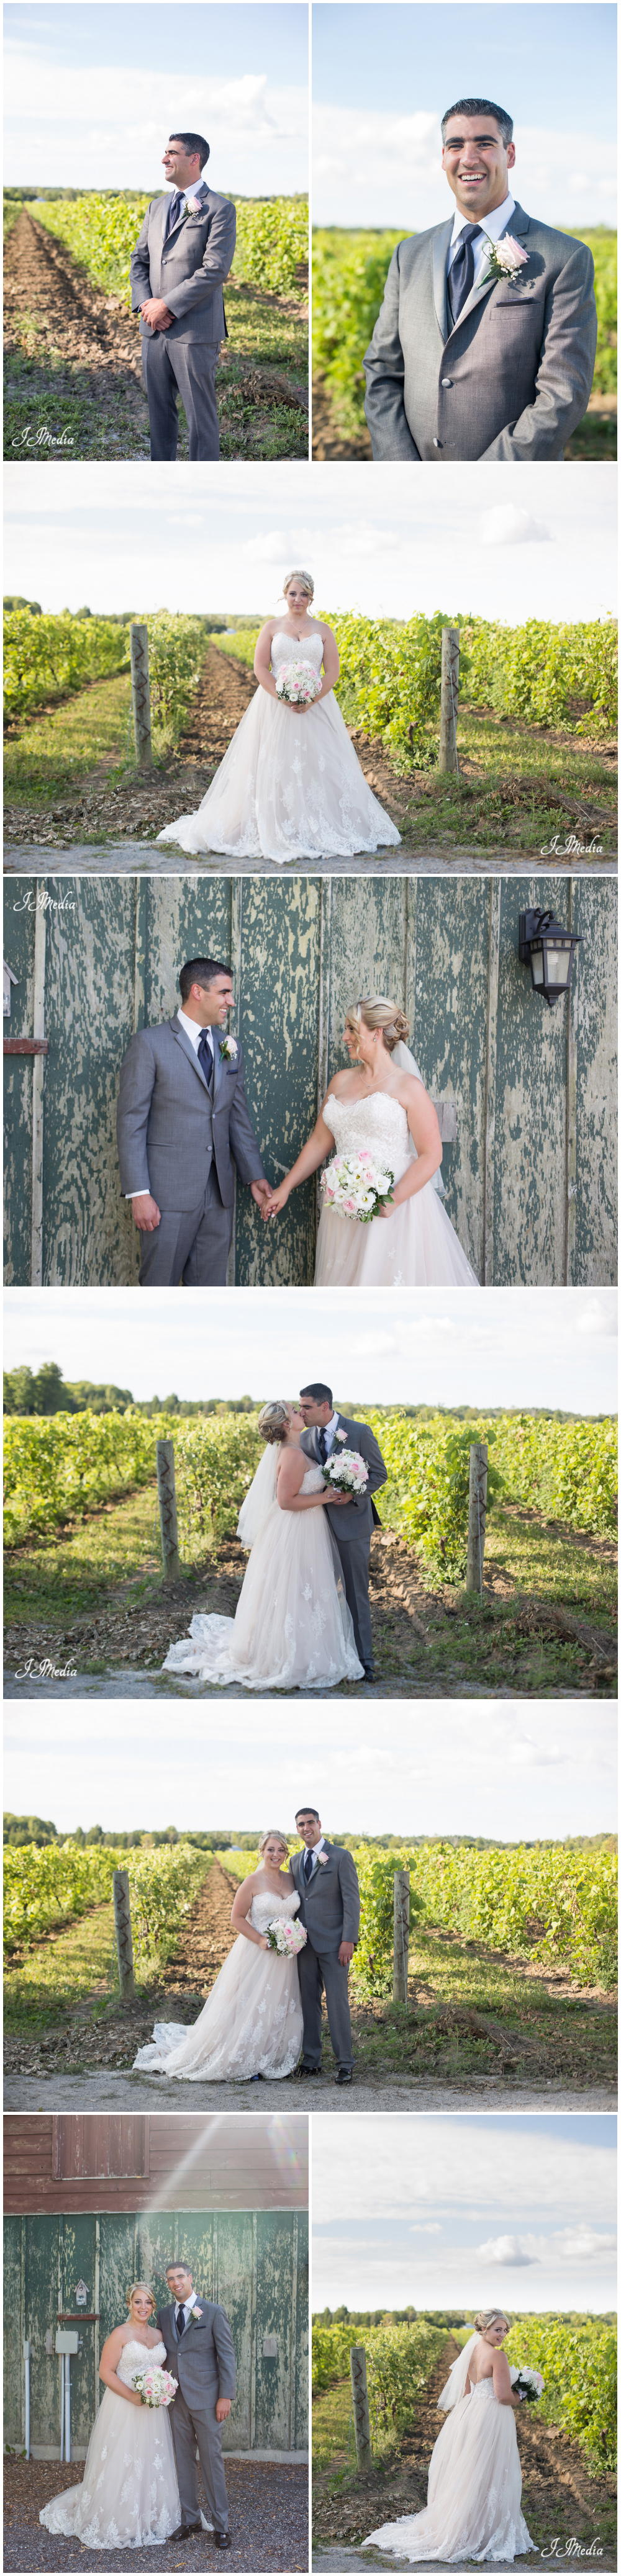 Willow_Springs_Winery_Wedding_JJMedia-9